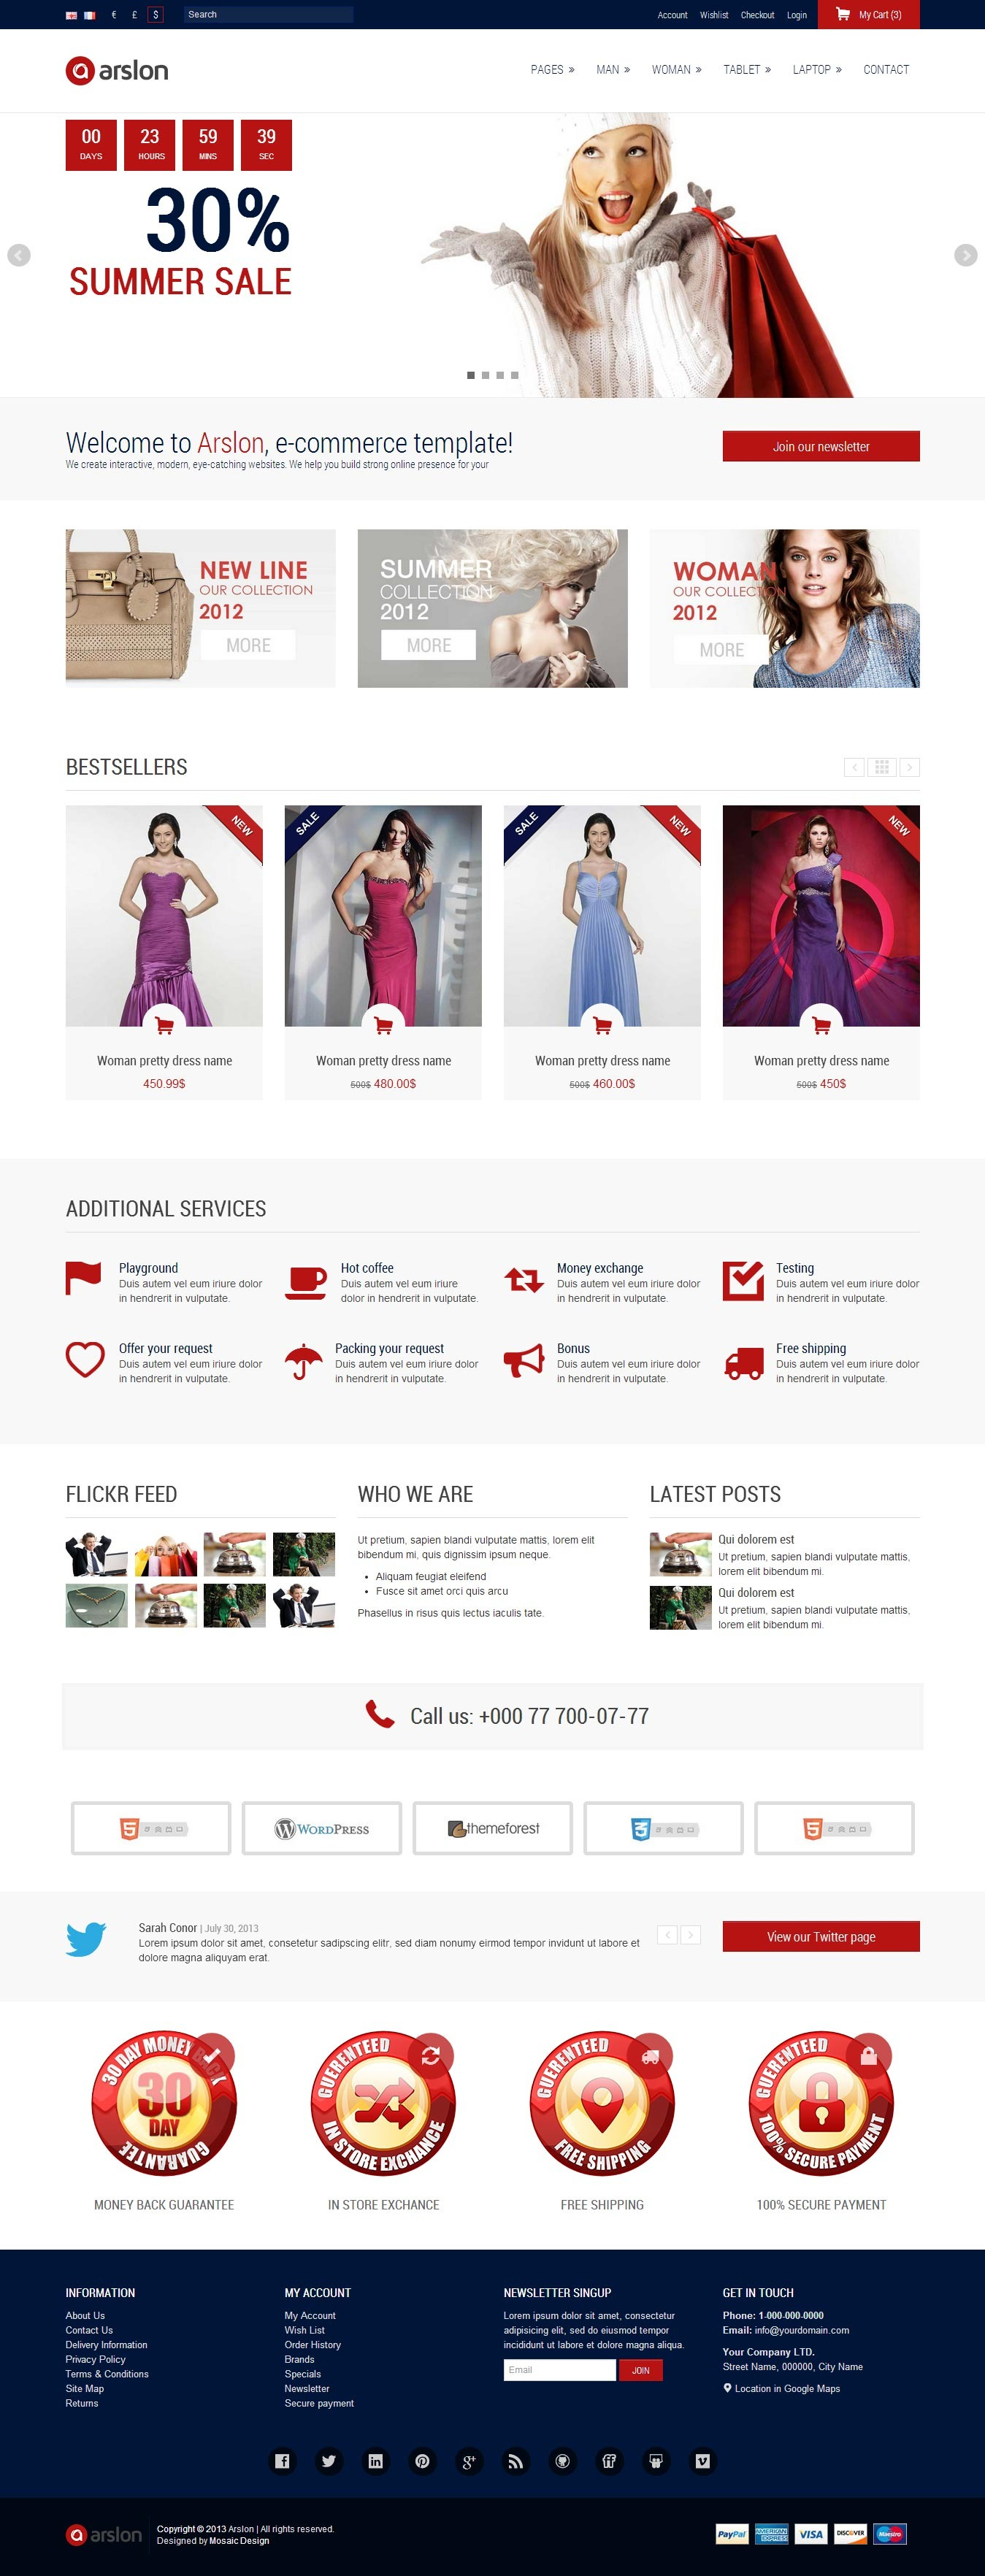 Arslon - Premium E-Commerce Template